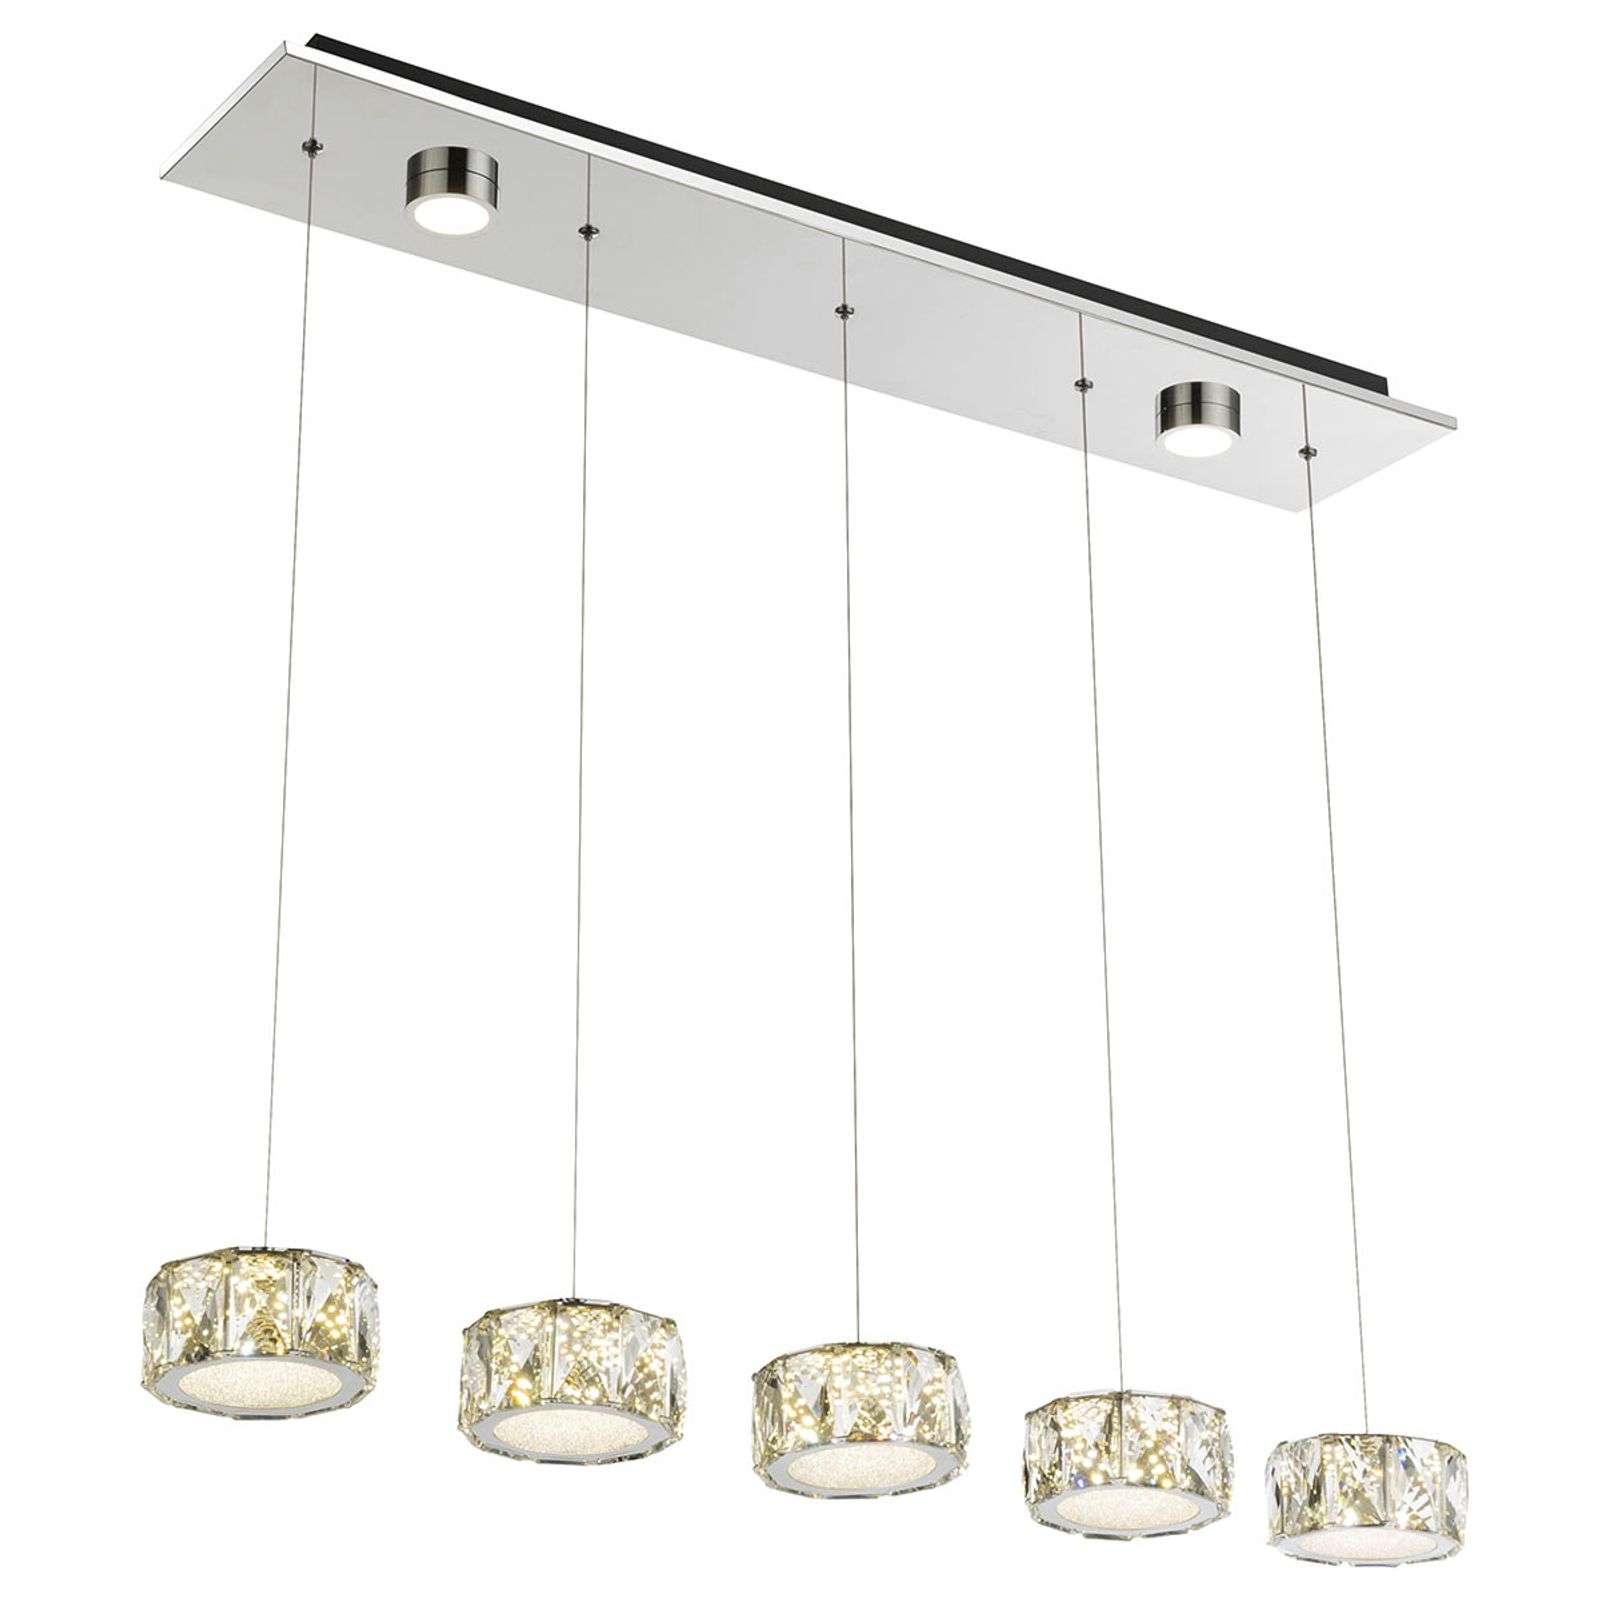 Amur - suspension LED à 5 lampes, avec 2 spots